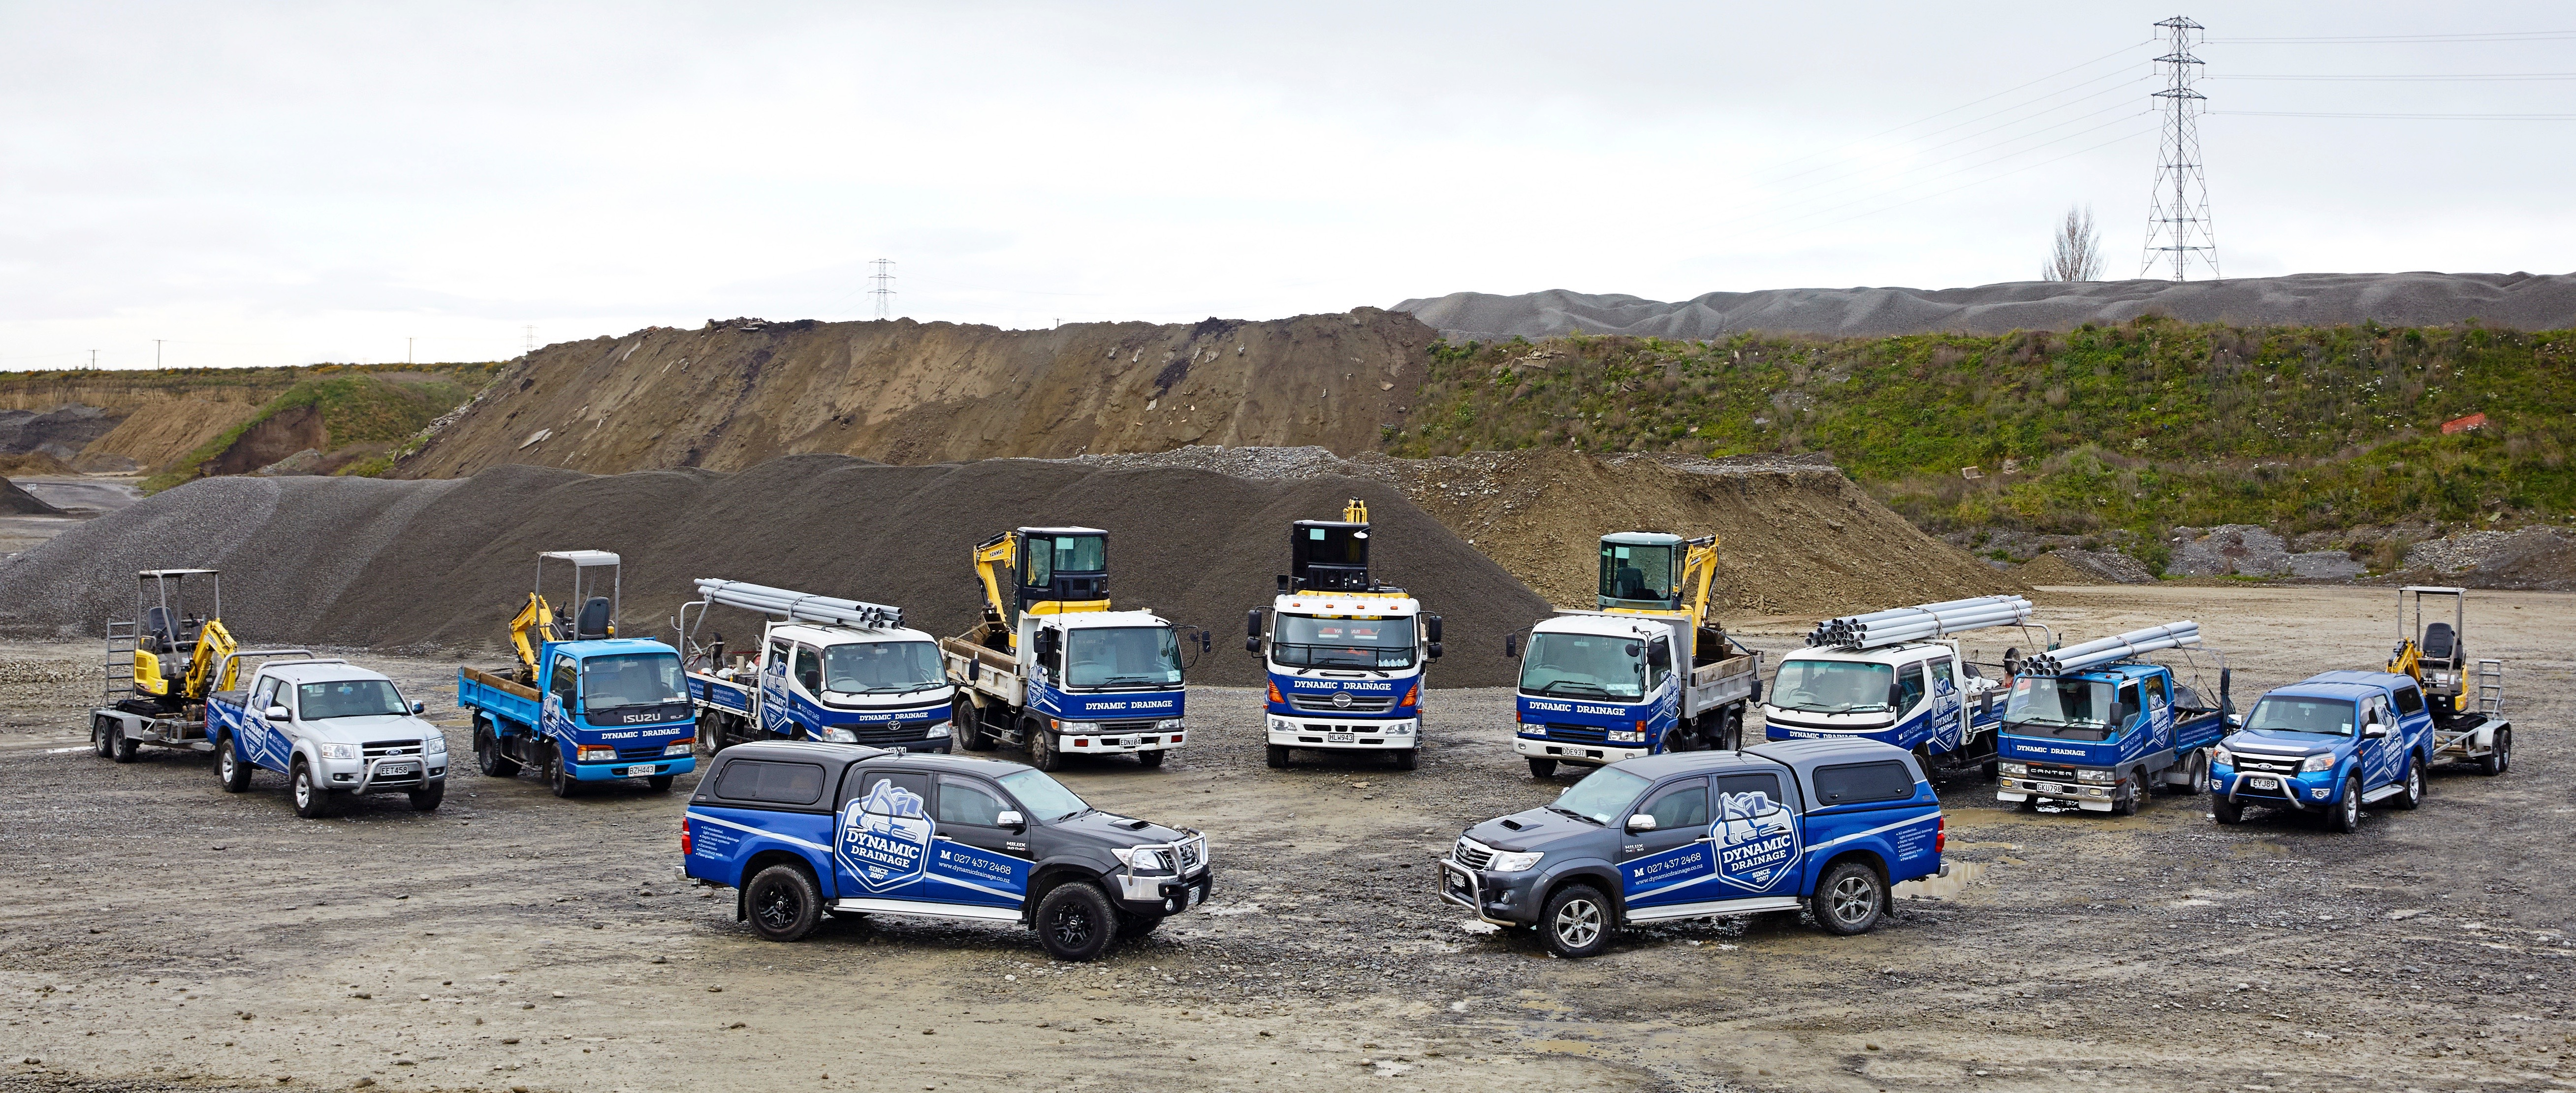 dynamic drainage fleet photo FORMATTED 5